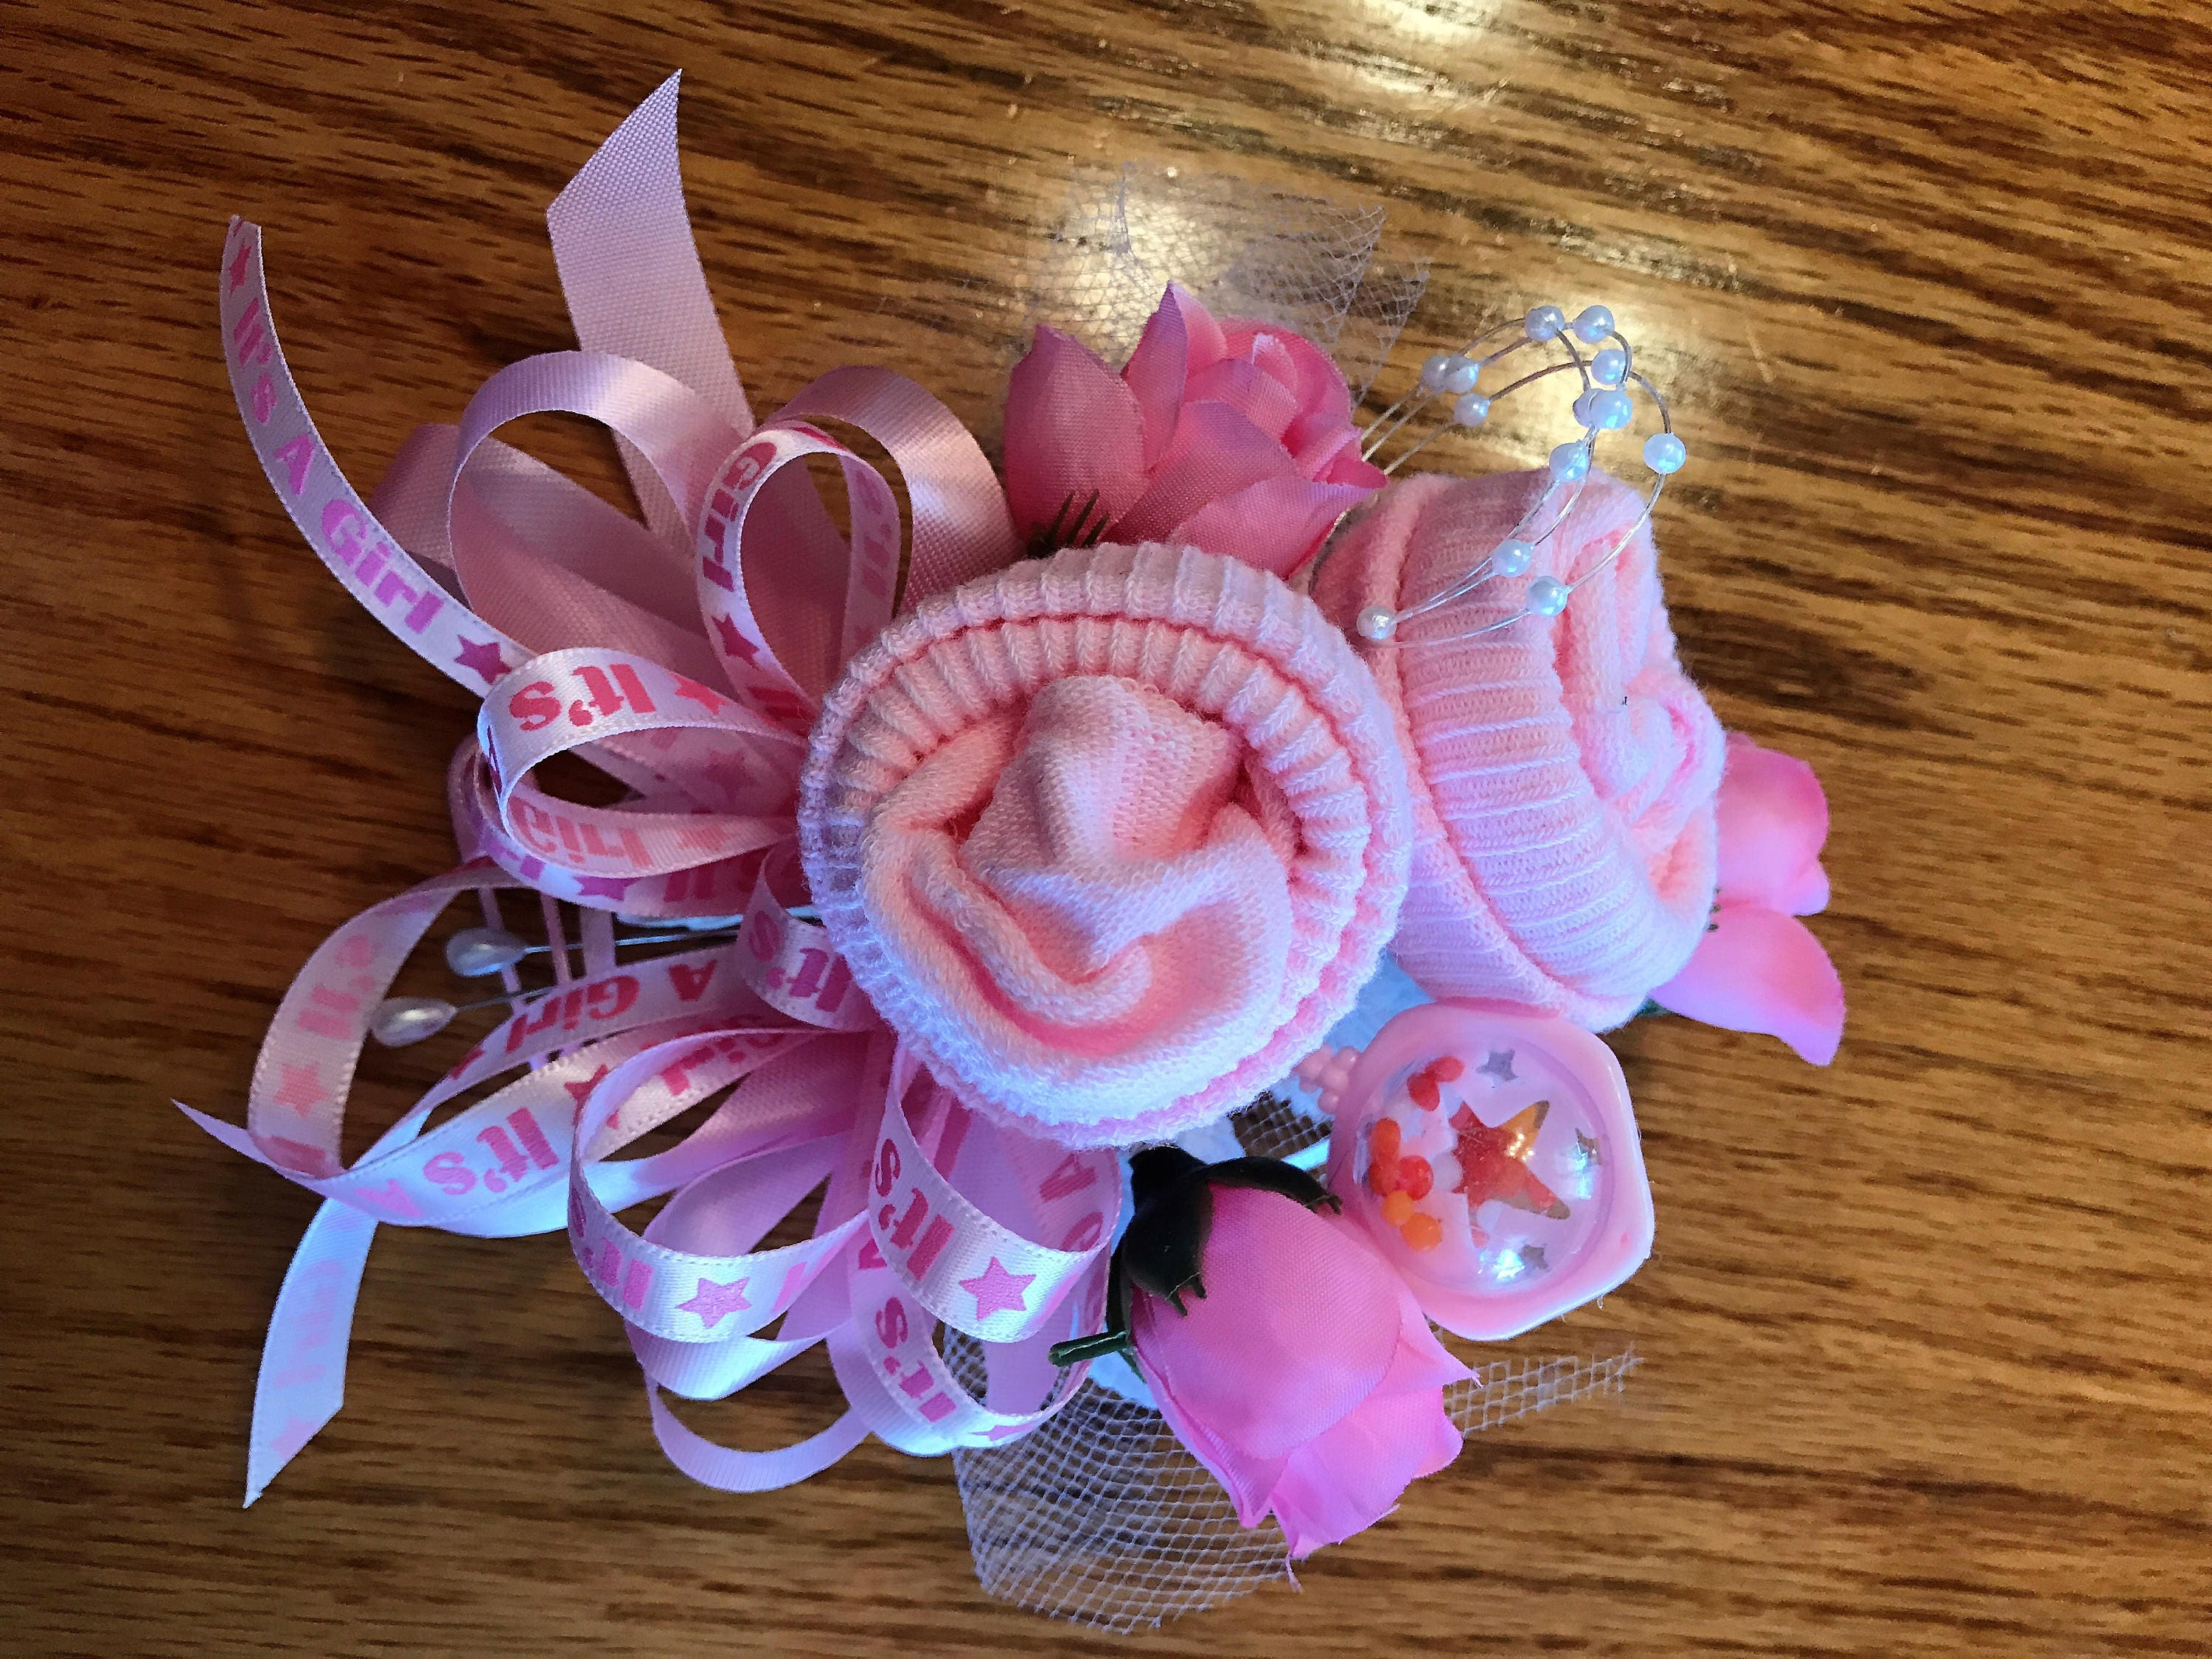 Baby sock corsage handmade baby sock shower corsage baby shower gift negle Gallery